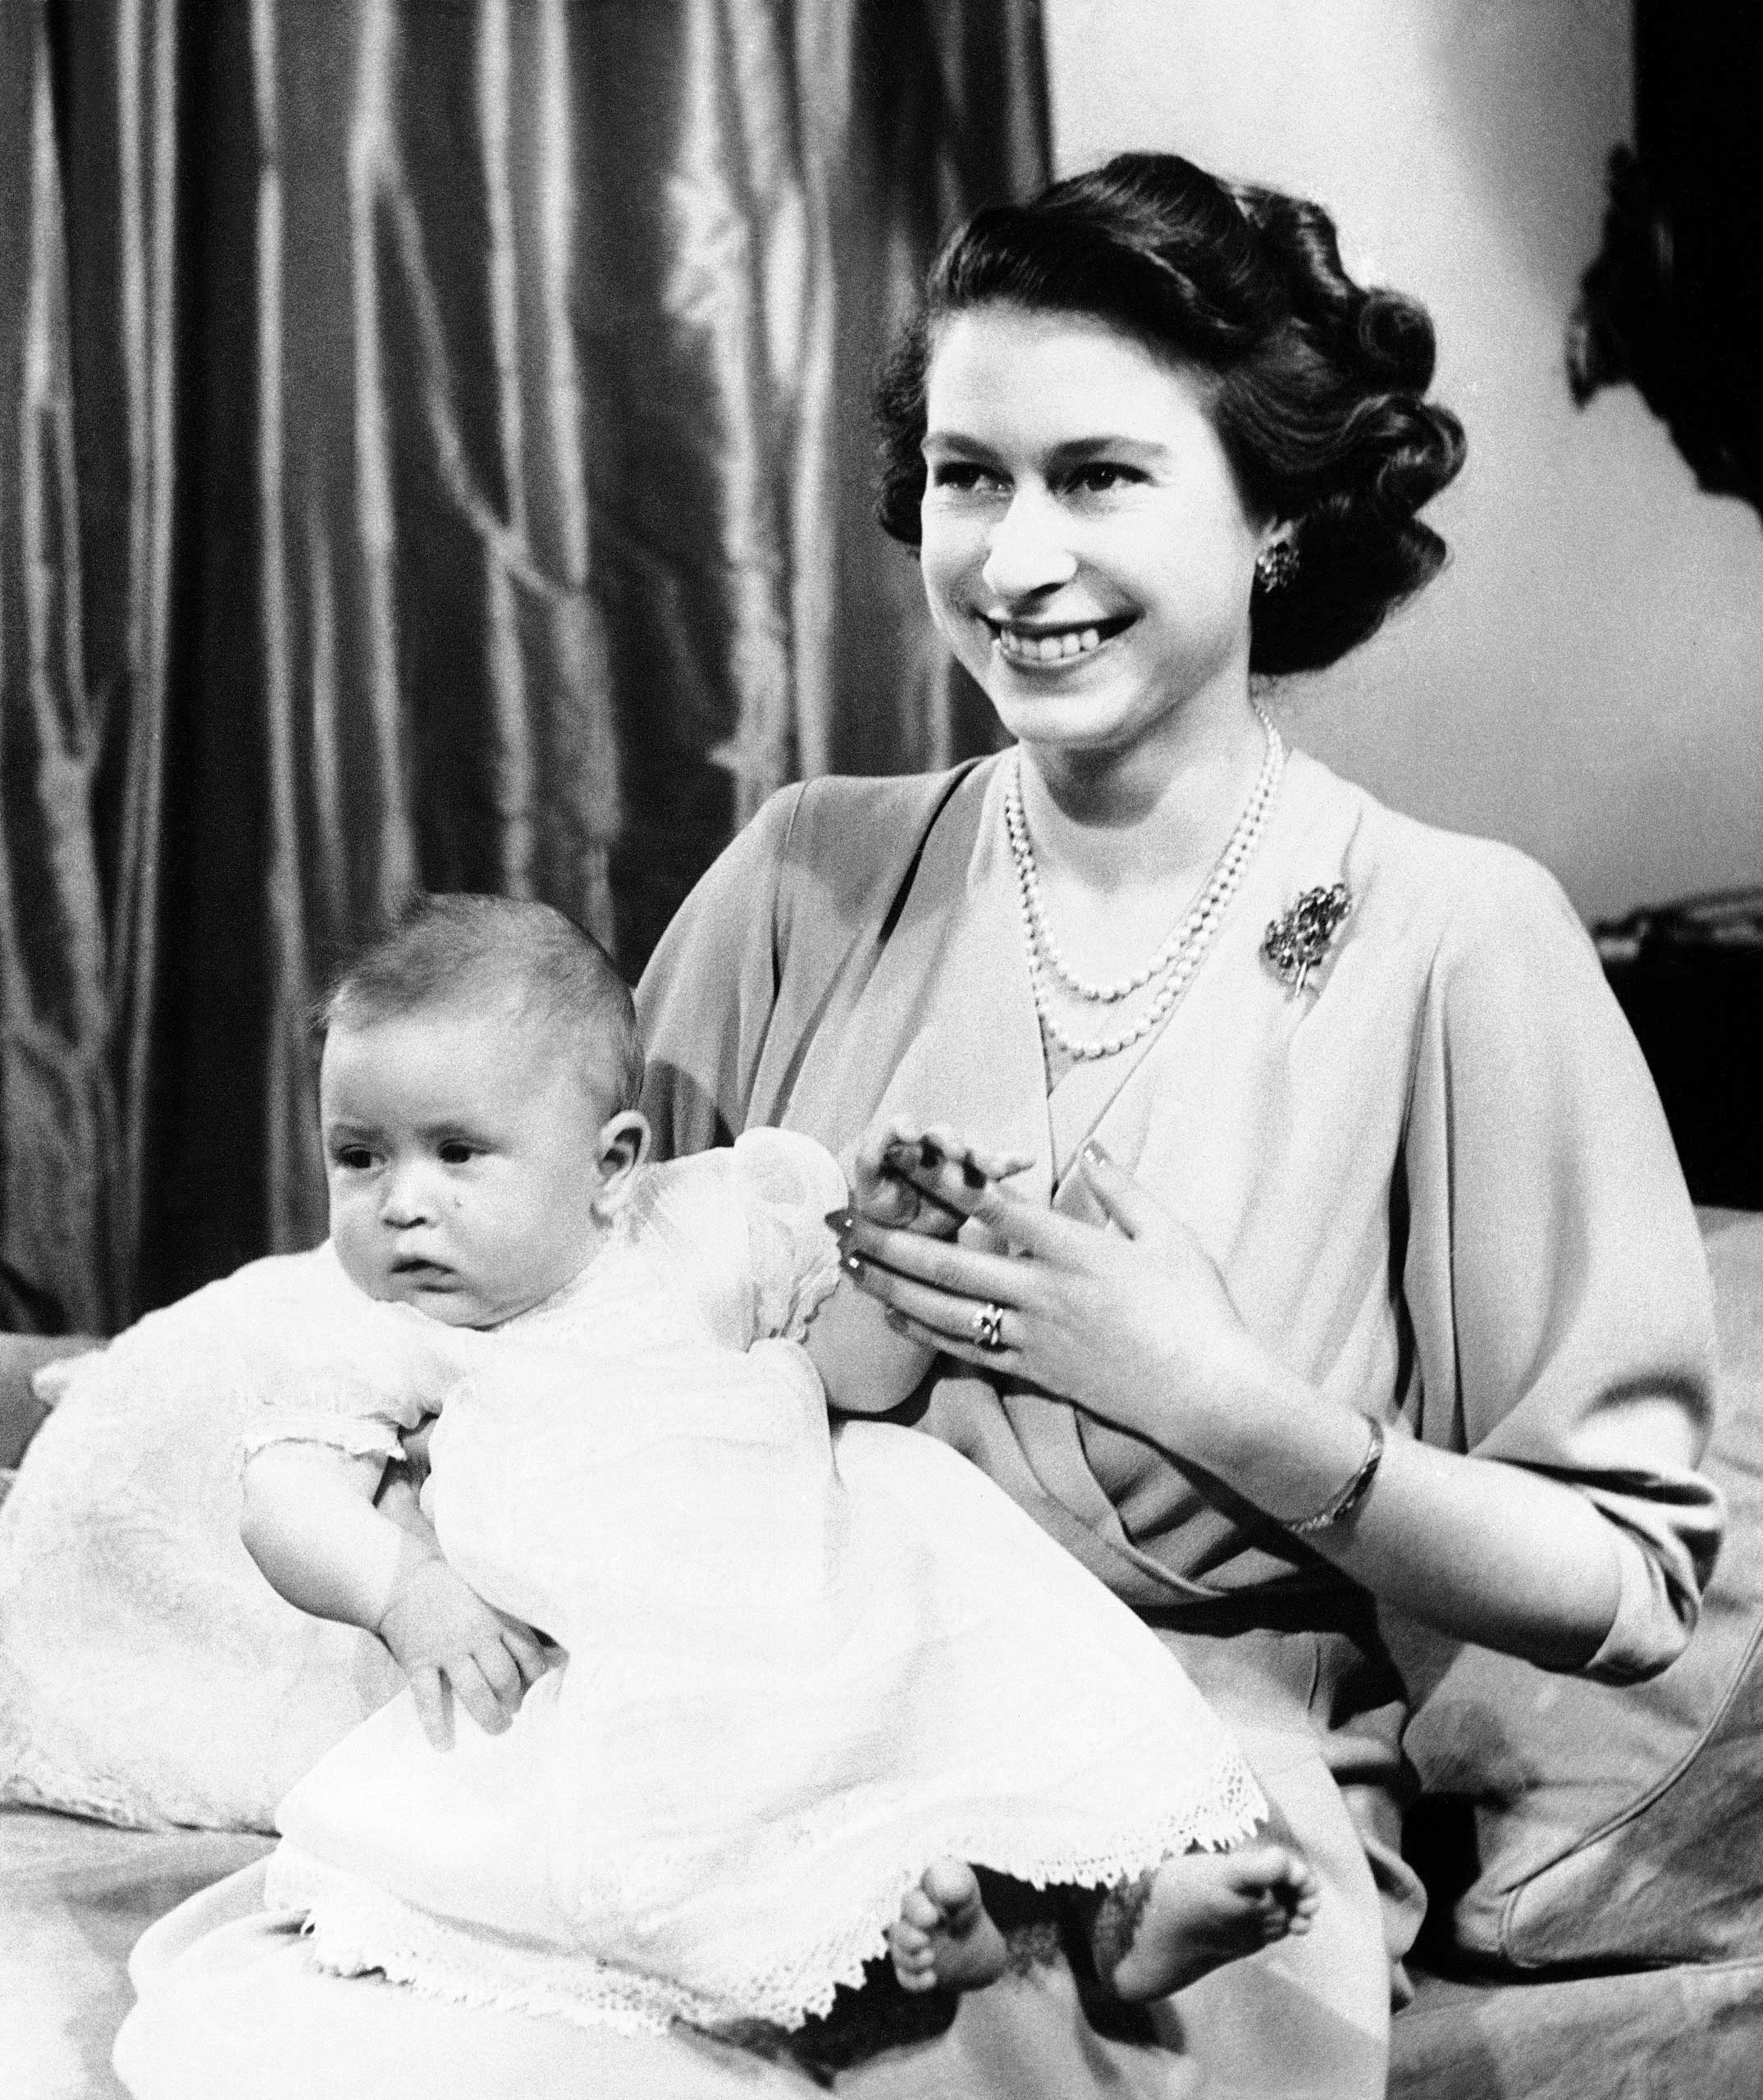 Before Princes Charles was born in 1948, his grandfather King George VI did away with a long-held custom that demanded the Home Secretary be present at royal births. Here Charles is pictured with his mother, at that stage still Princess Elizabeth.